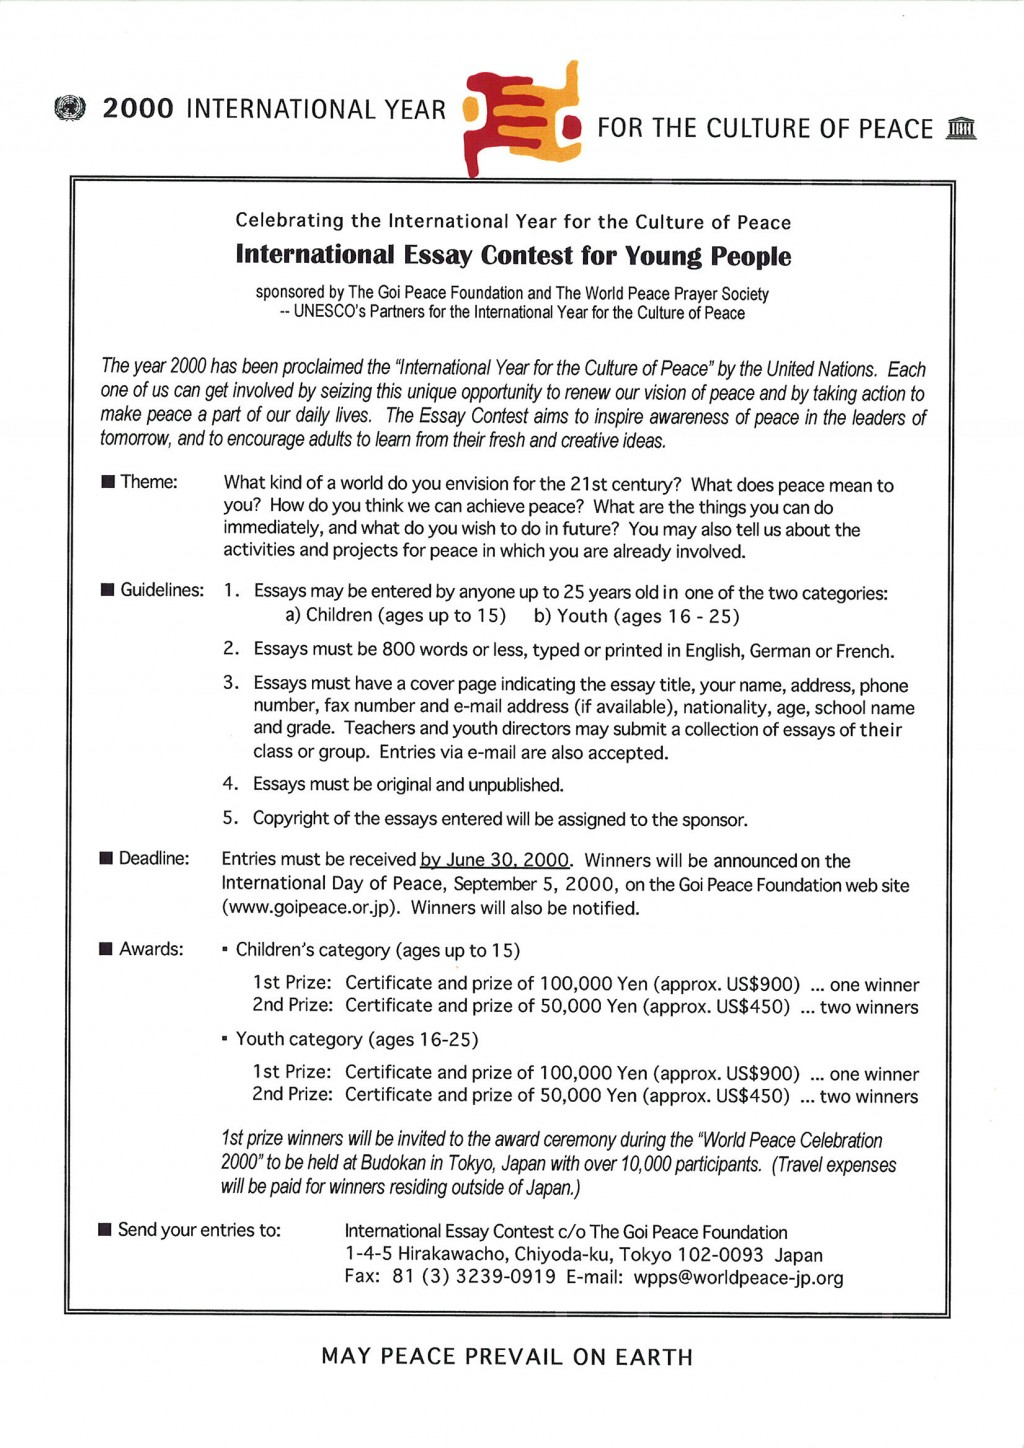 017 Essay Example National Peace Marvelous Contest 2019 Large